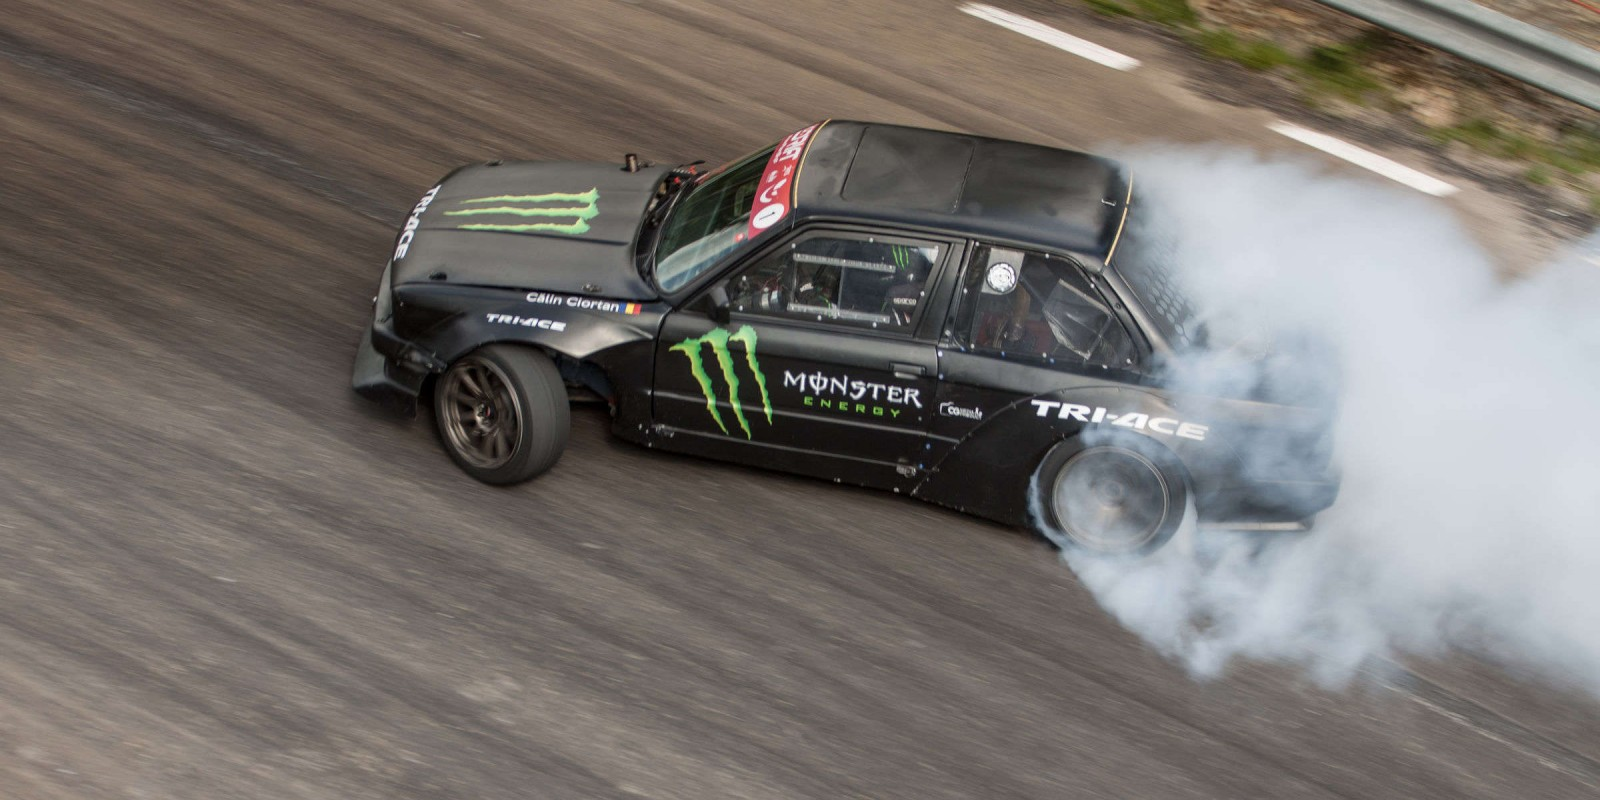 Event imagery taken at the 4th stage of the Romanian Drift Championship.